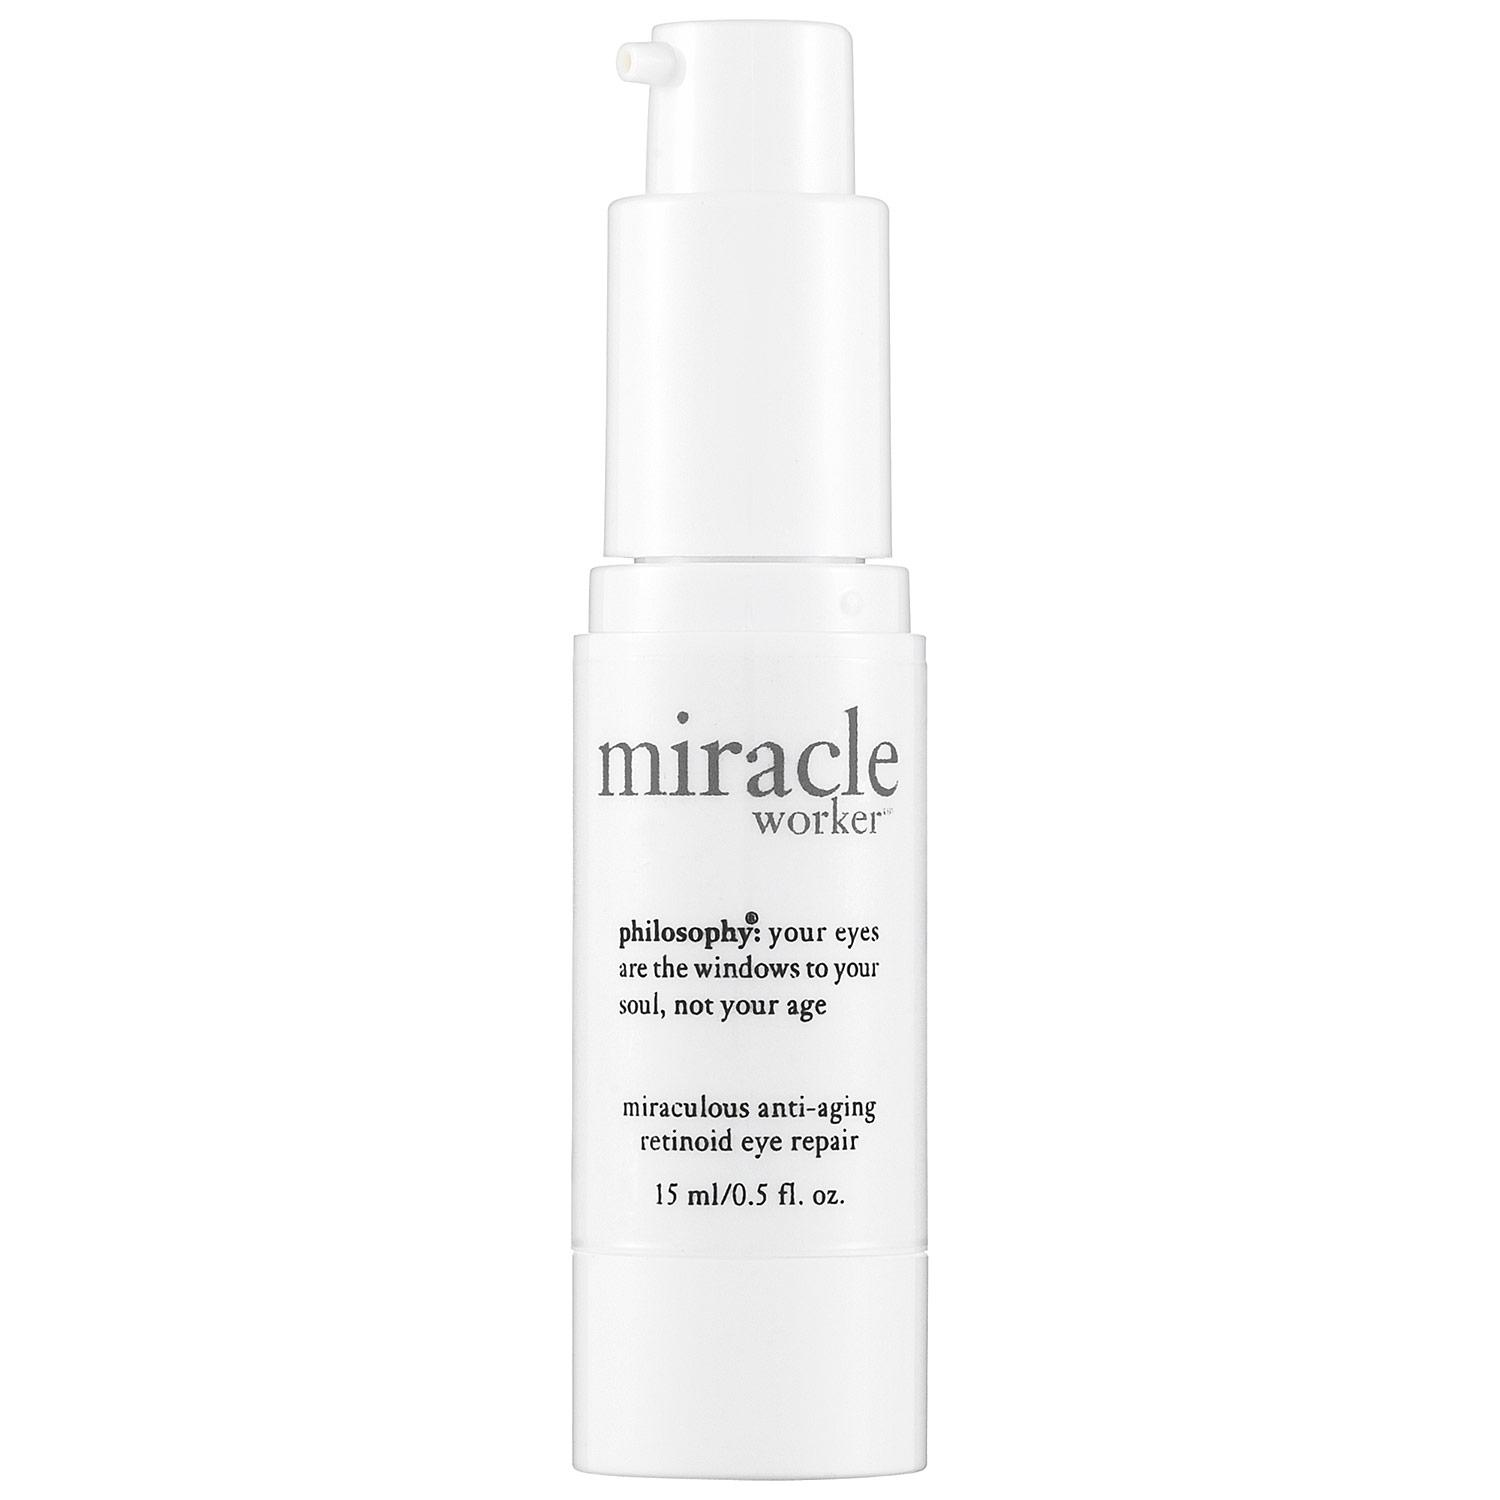 Miracle Worker Retinoid Eye Repair Cream